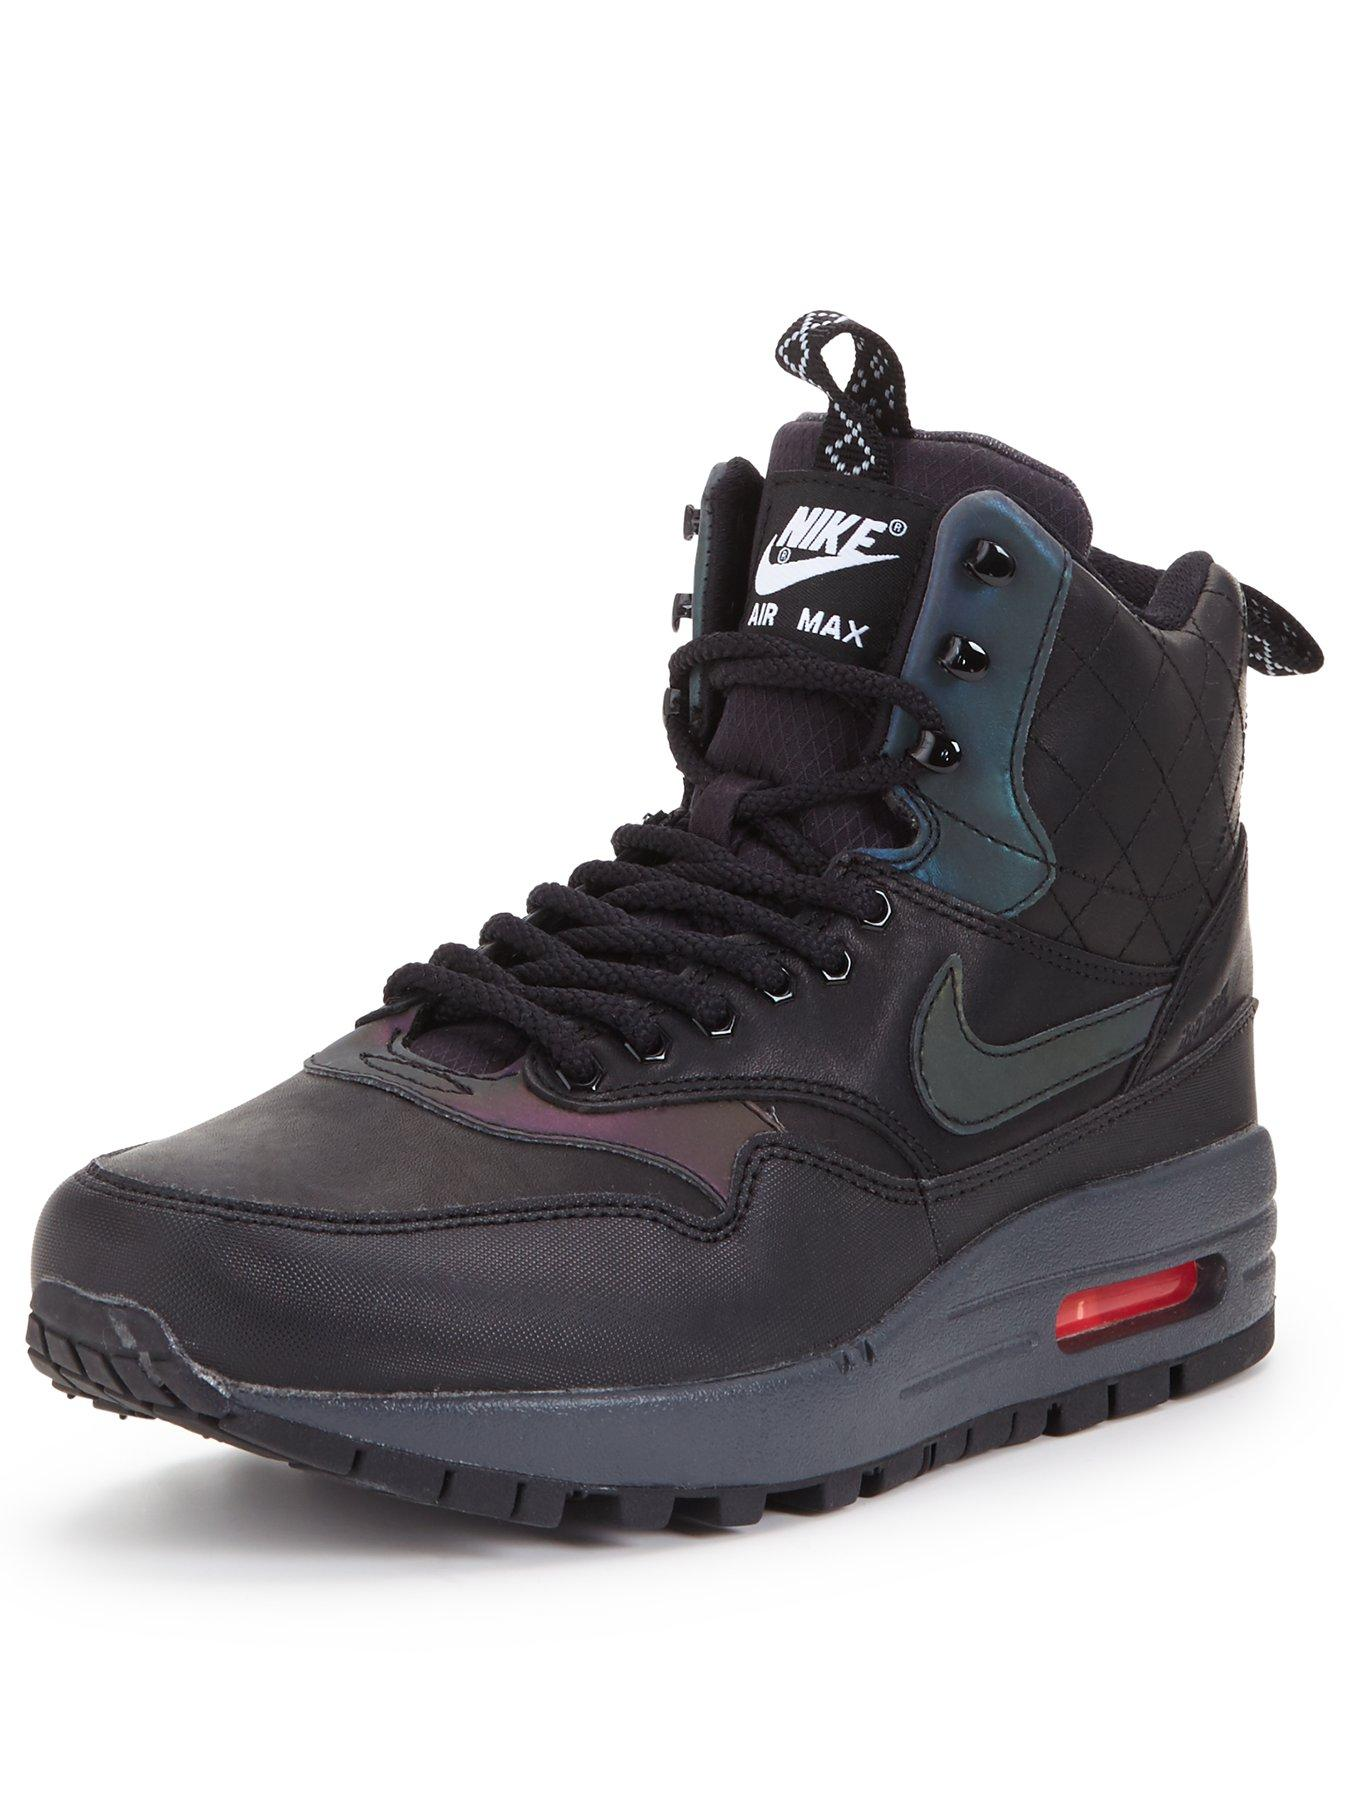 Nike Air Max 1 Mid Sneakerboot Women's Shoe